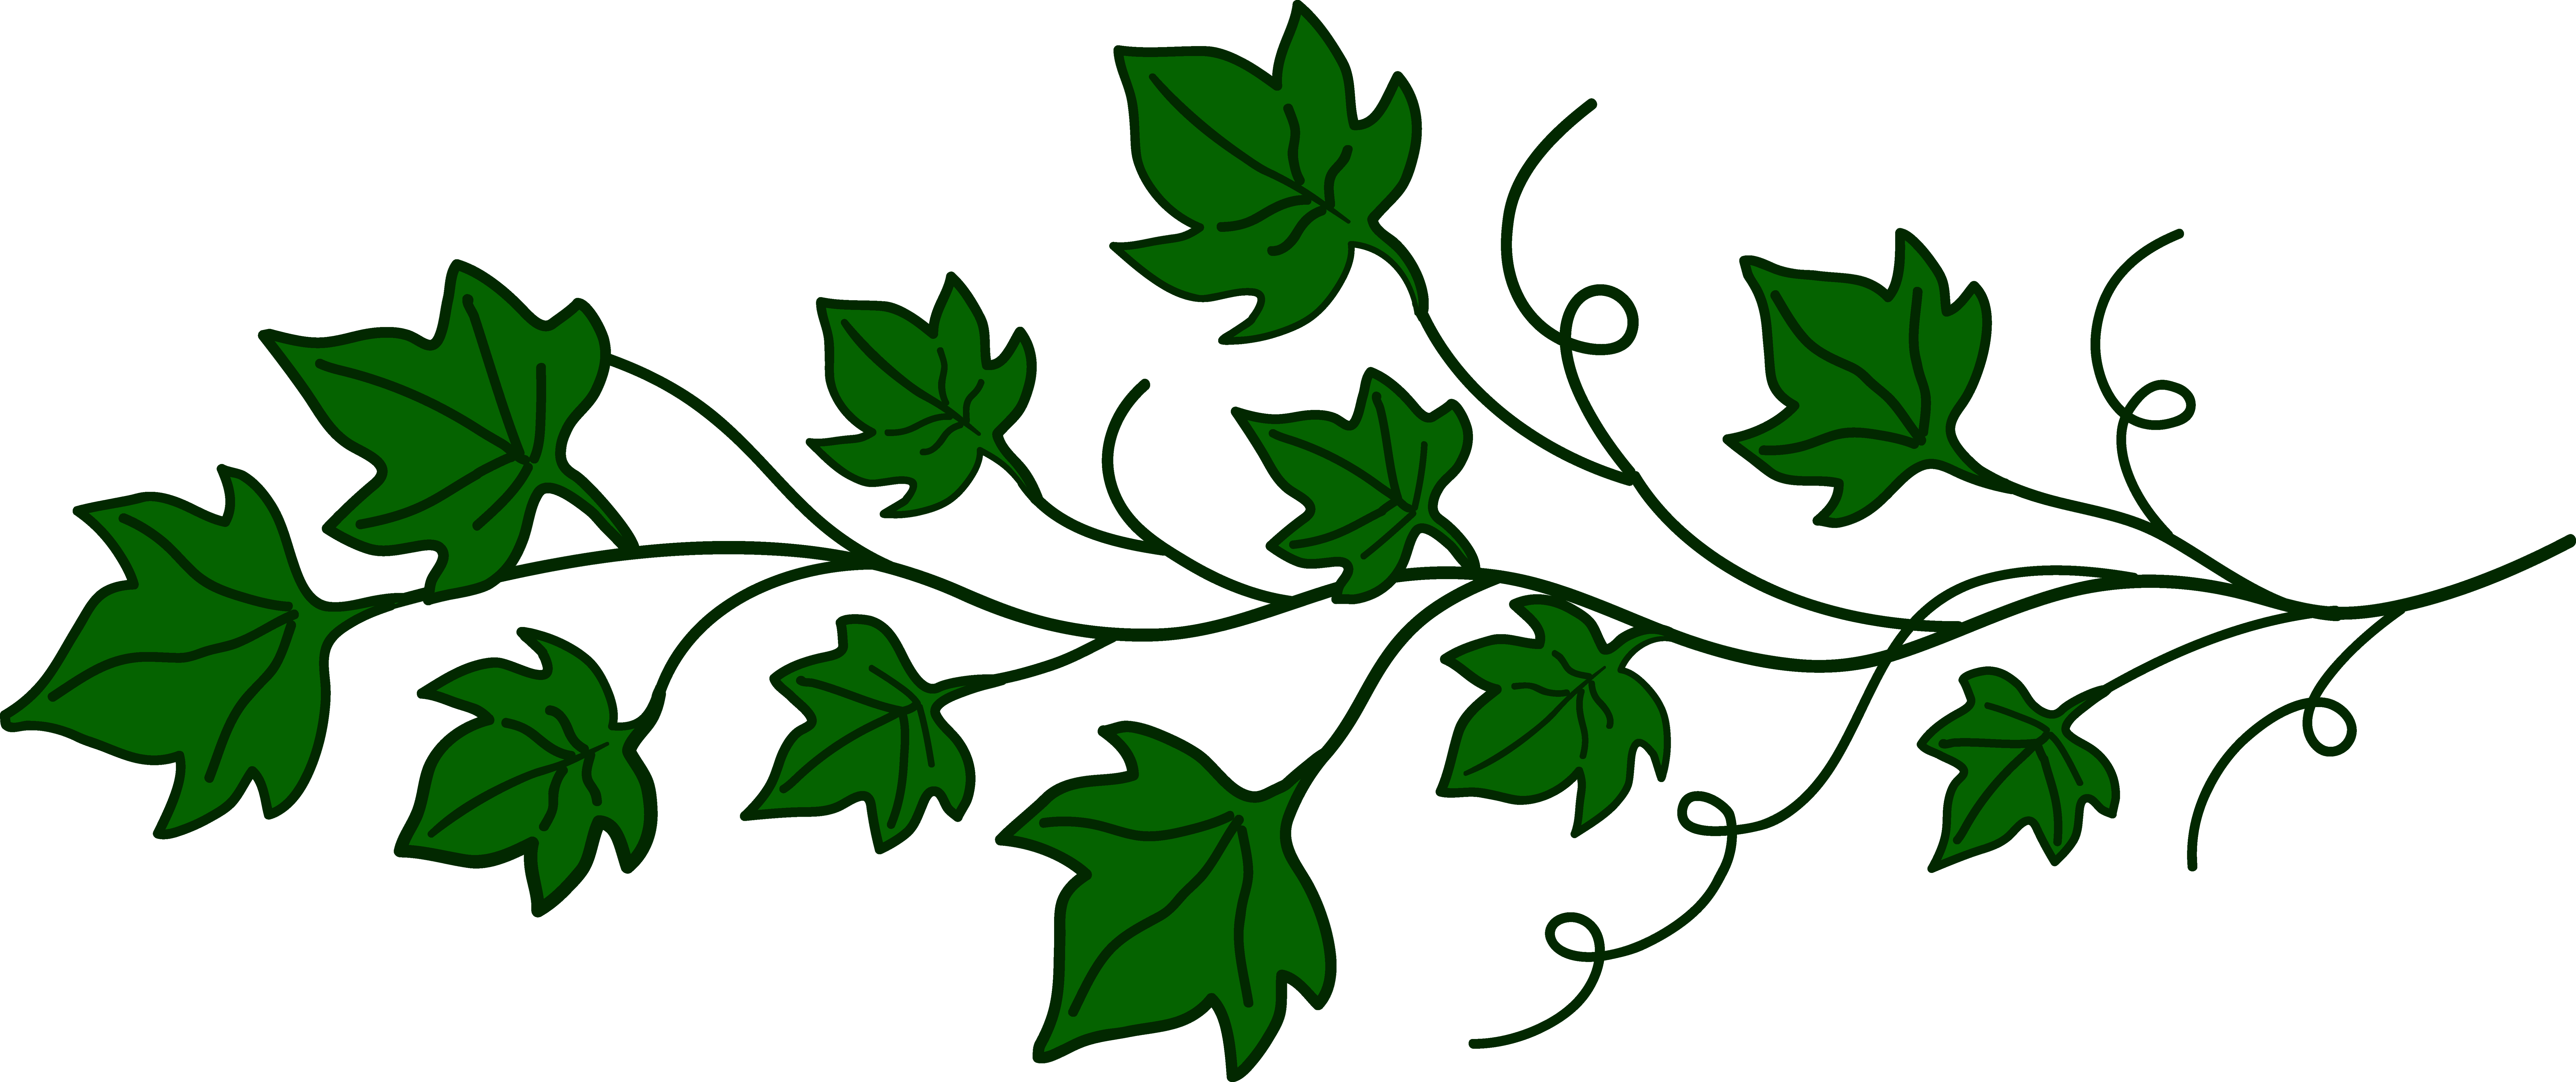 png royalty free stock Vine clipart.  collection of high